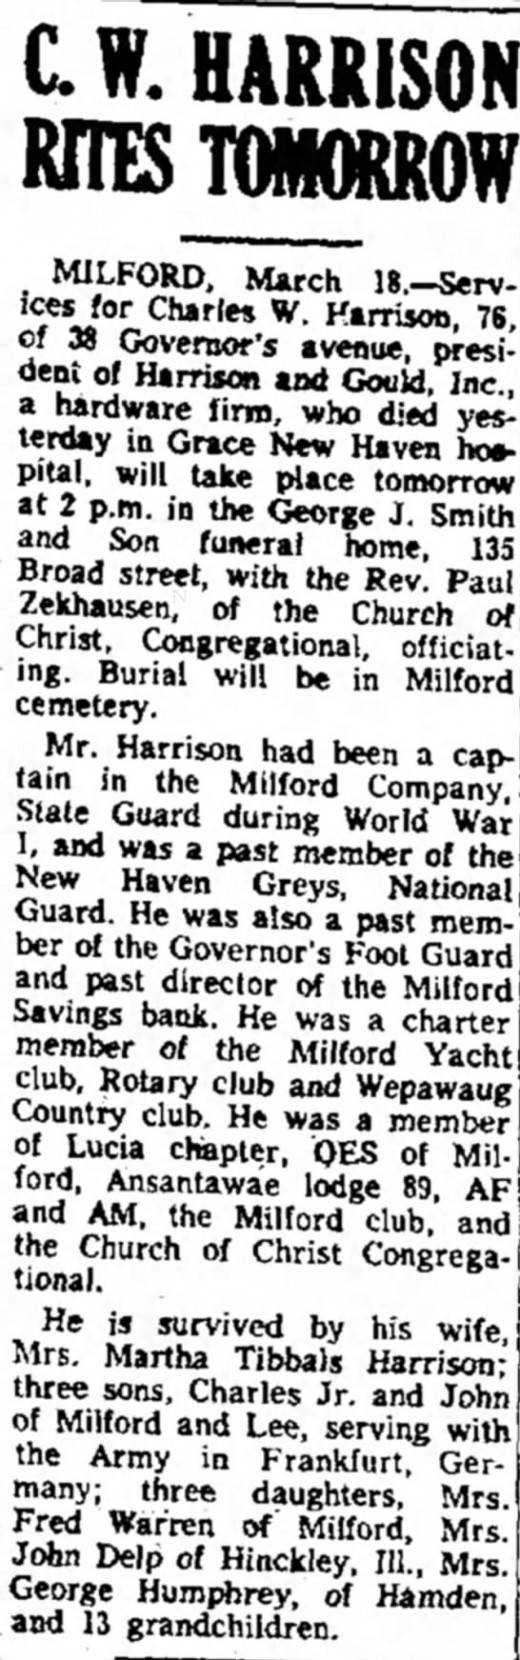 If this is the right Martha Tibbals, it sounds like she had a long life with children and grandchildren in plenty. This is the obituary of her husband.  The Bridgeport Post  (Bridgeport, Connecticut) 18 Mar 1958, Tue  • Page 49